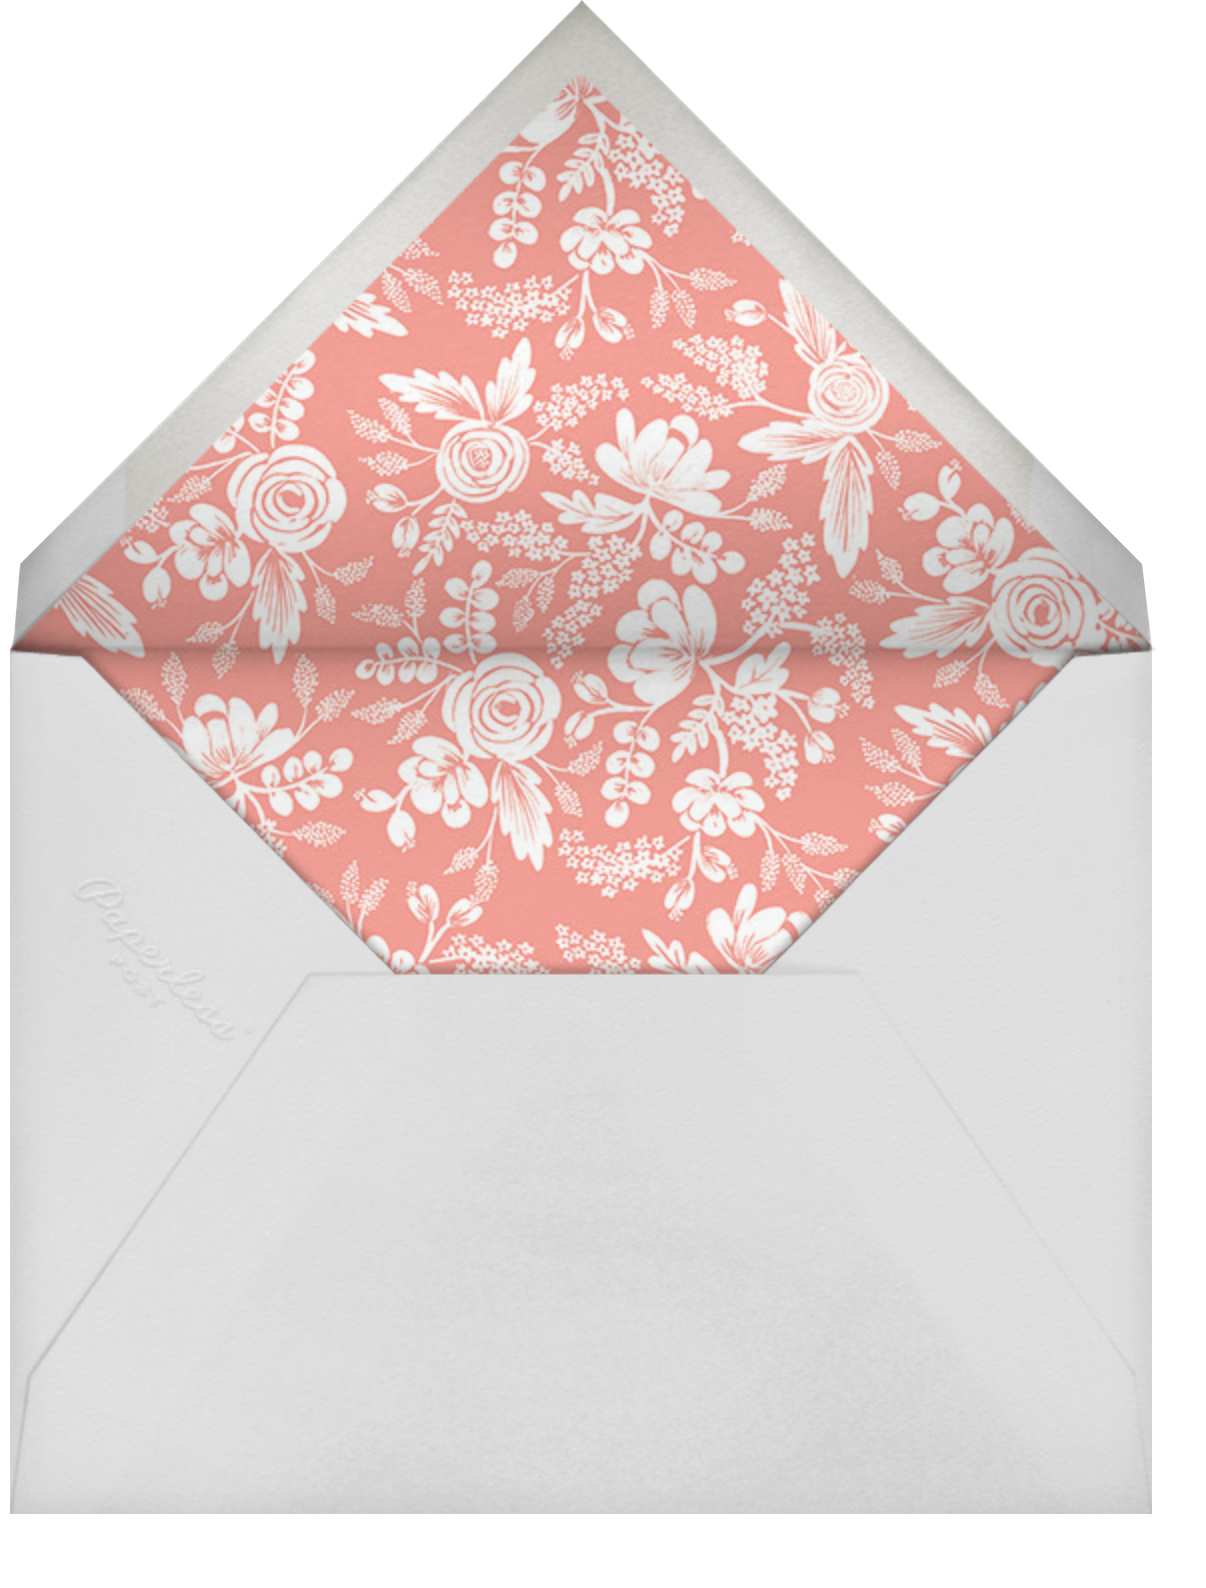 Heather and Lace (Invitation) - White/Gold - Rifle Paper Co. - Rehearsal dinner - envelope back